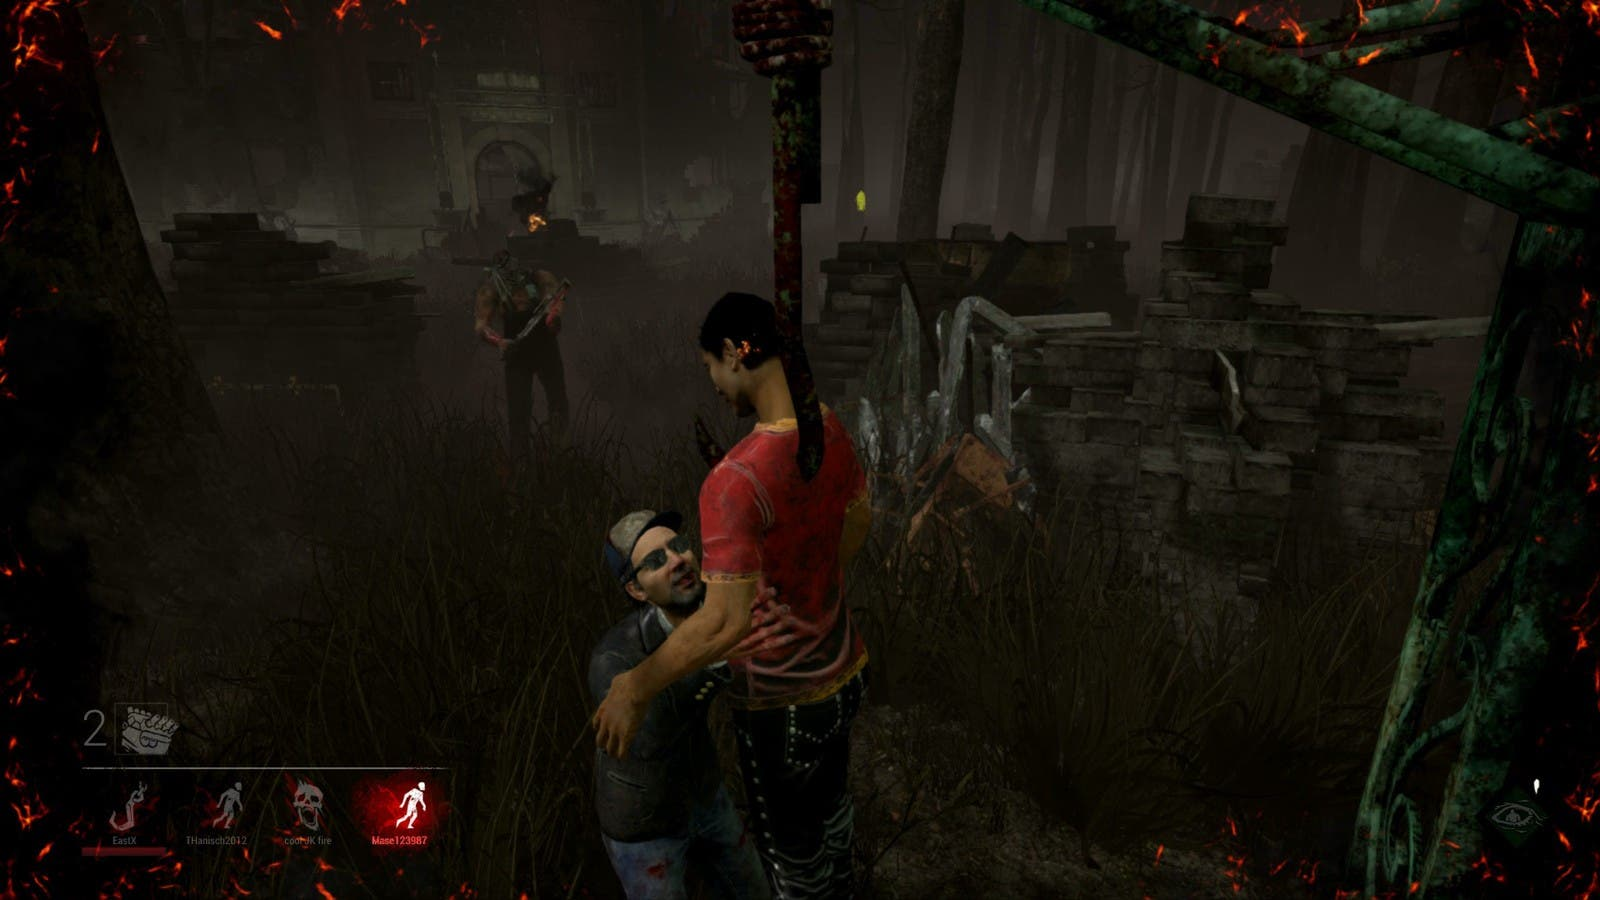 Consejos para empezar en Dead by Daylight, ya disponible en Xbox Game Pass 7